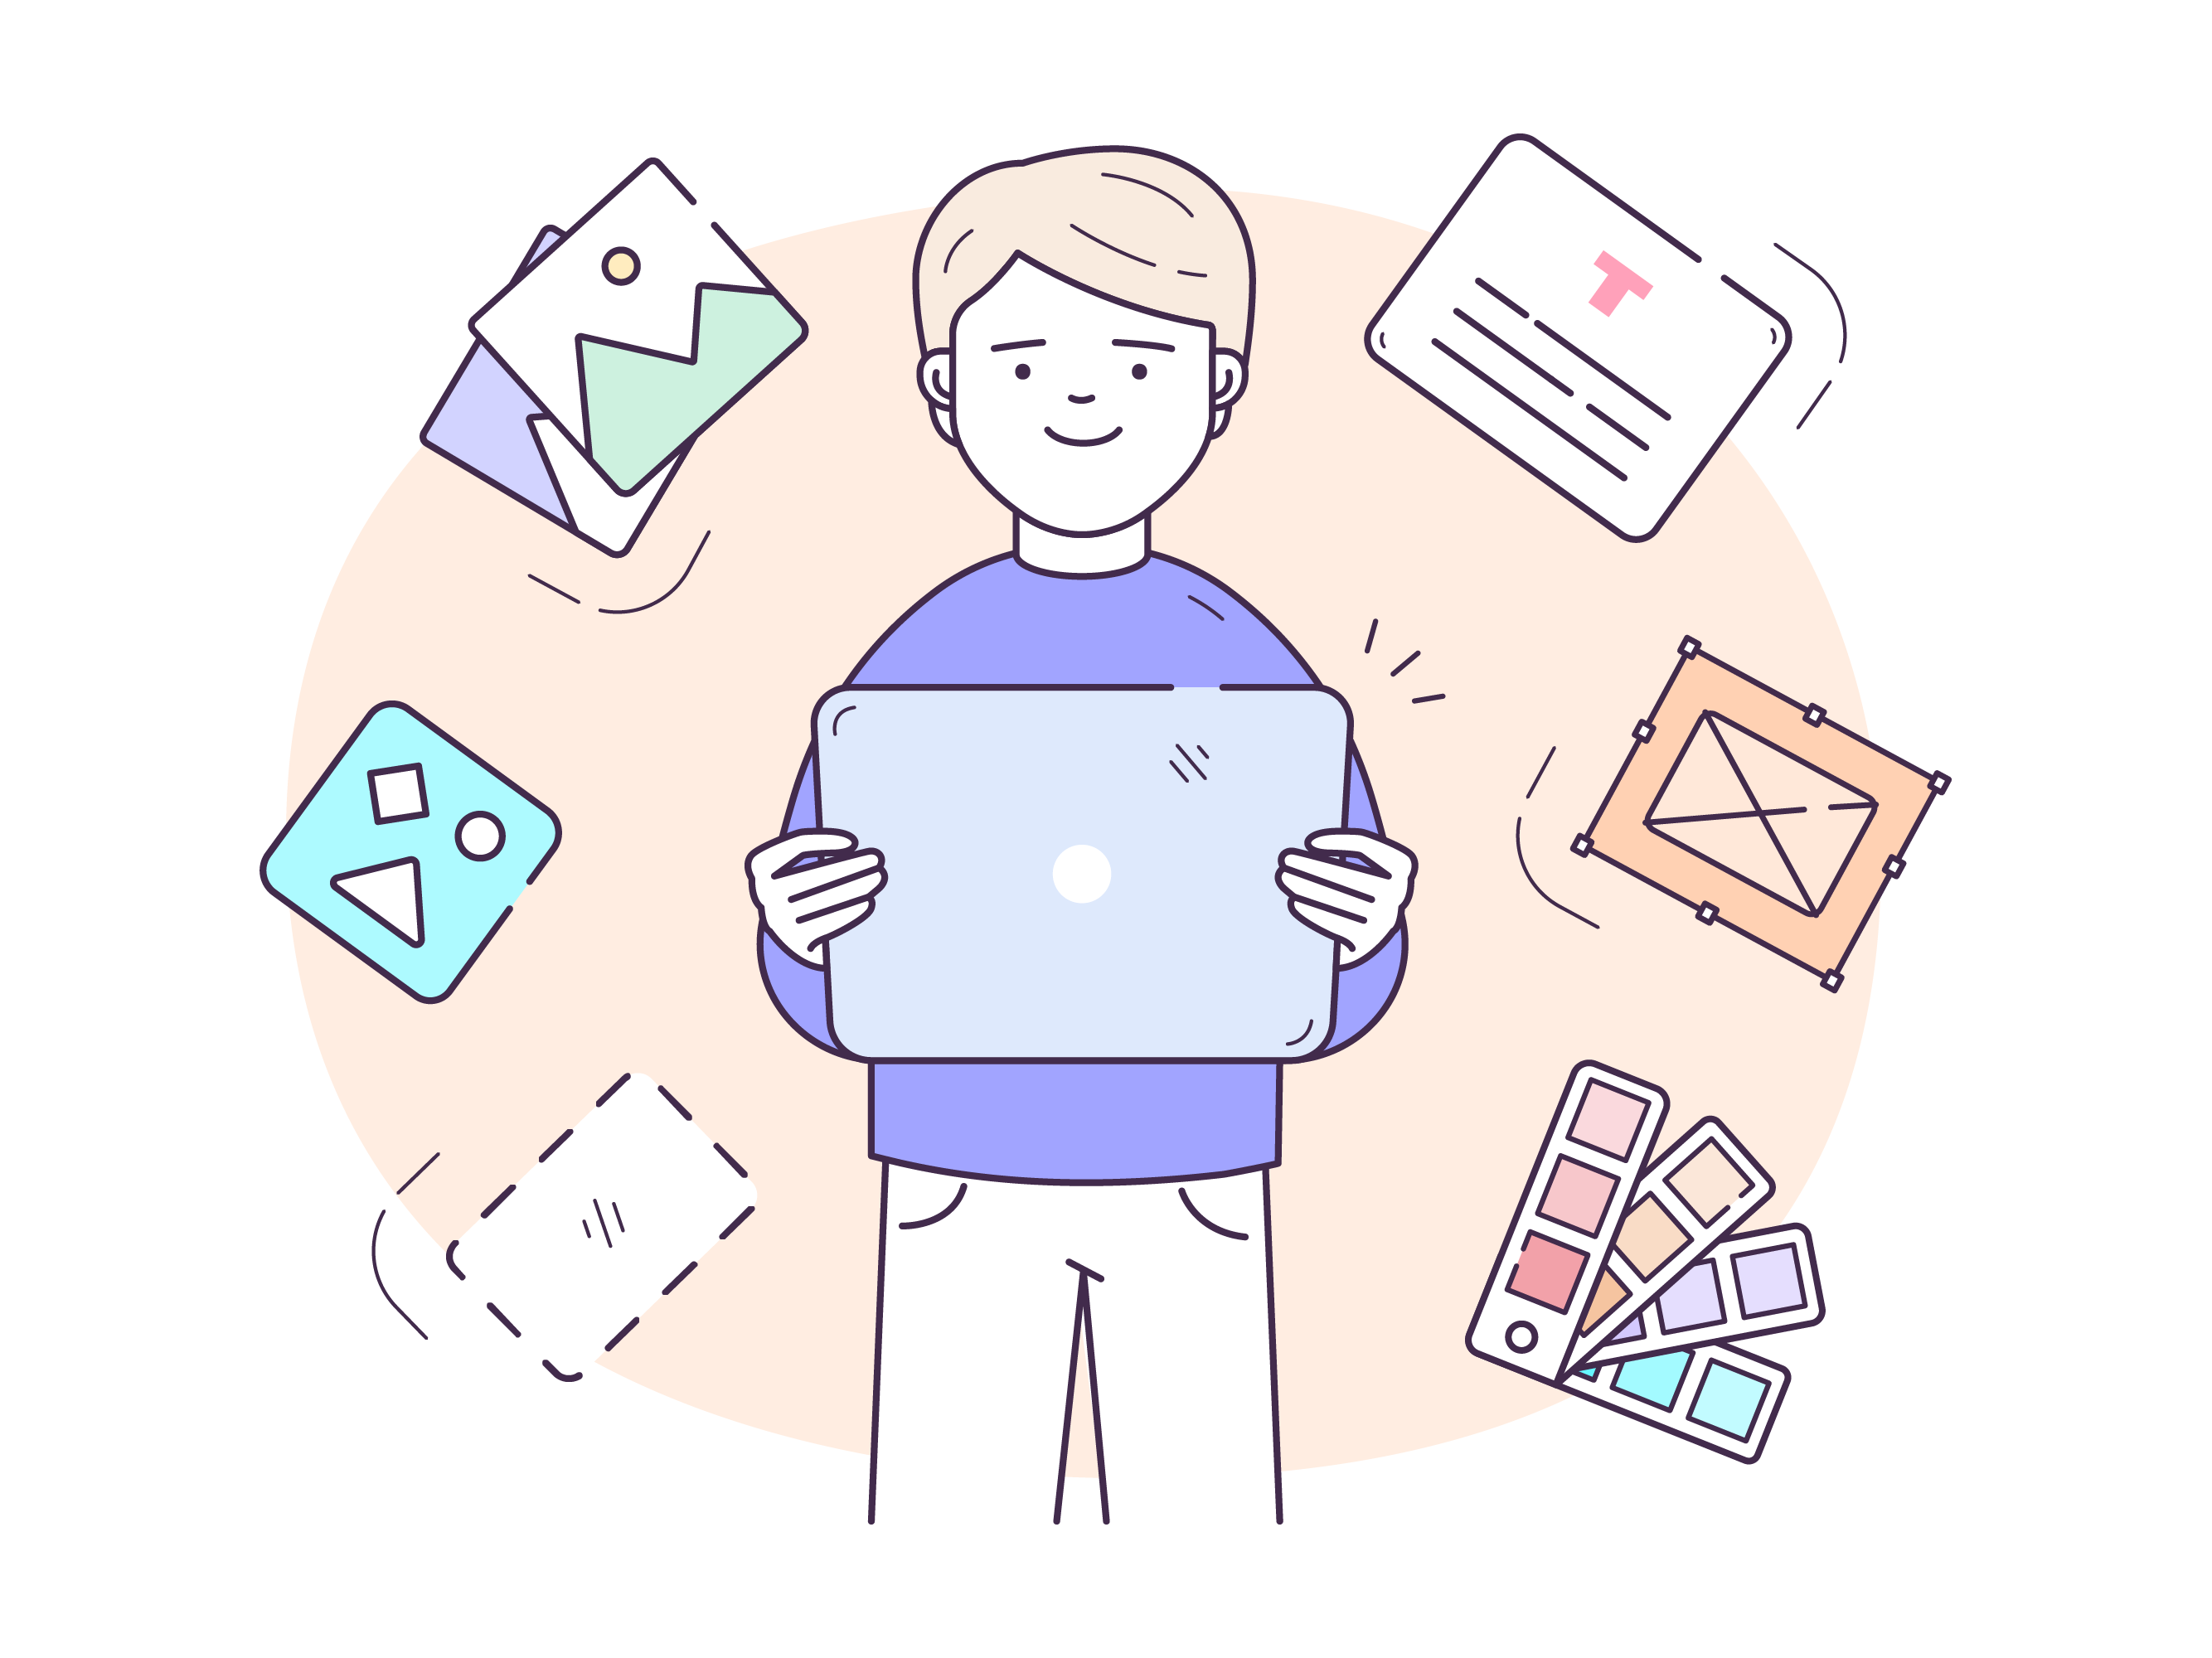 Illustration of a person holding a tablet with lots of ideas